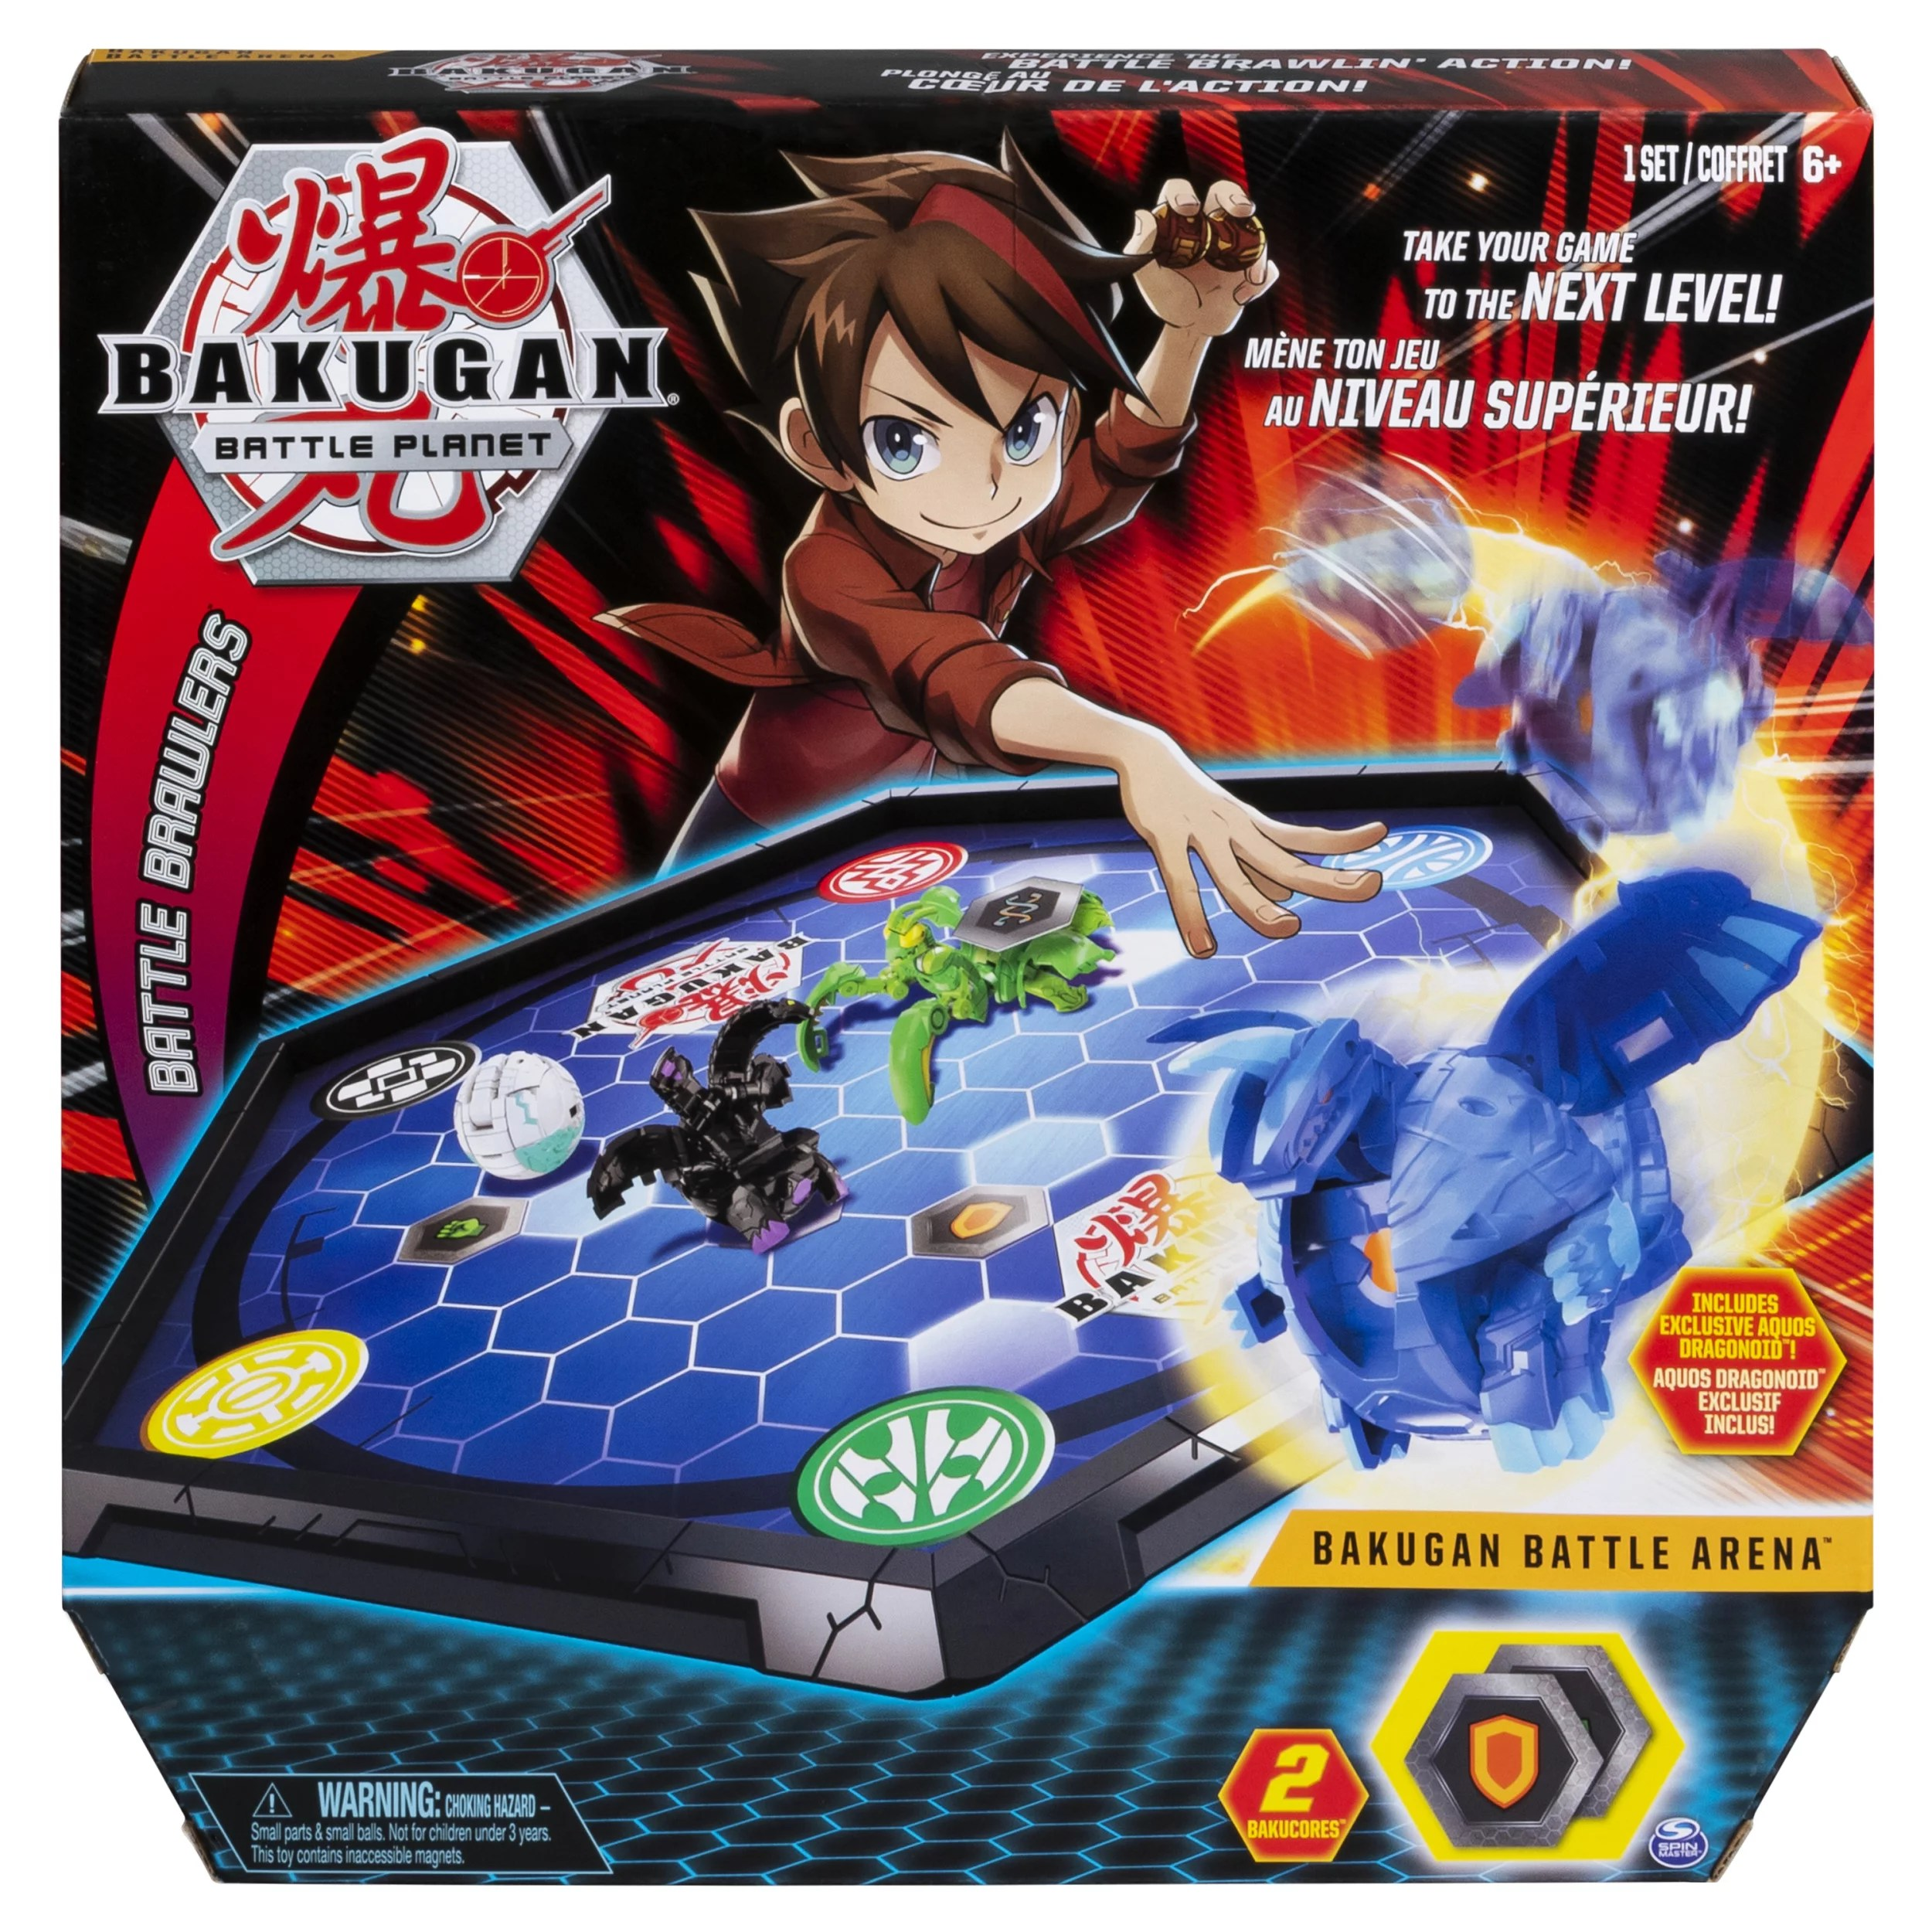 Arena Game Bakugan Battle Arena Game Board For Bakugan Collectibles For Ages 6 And Up